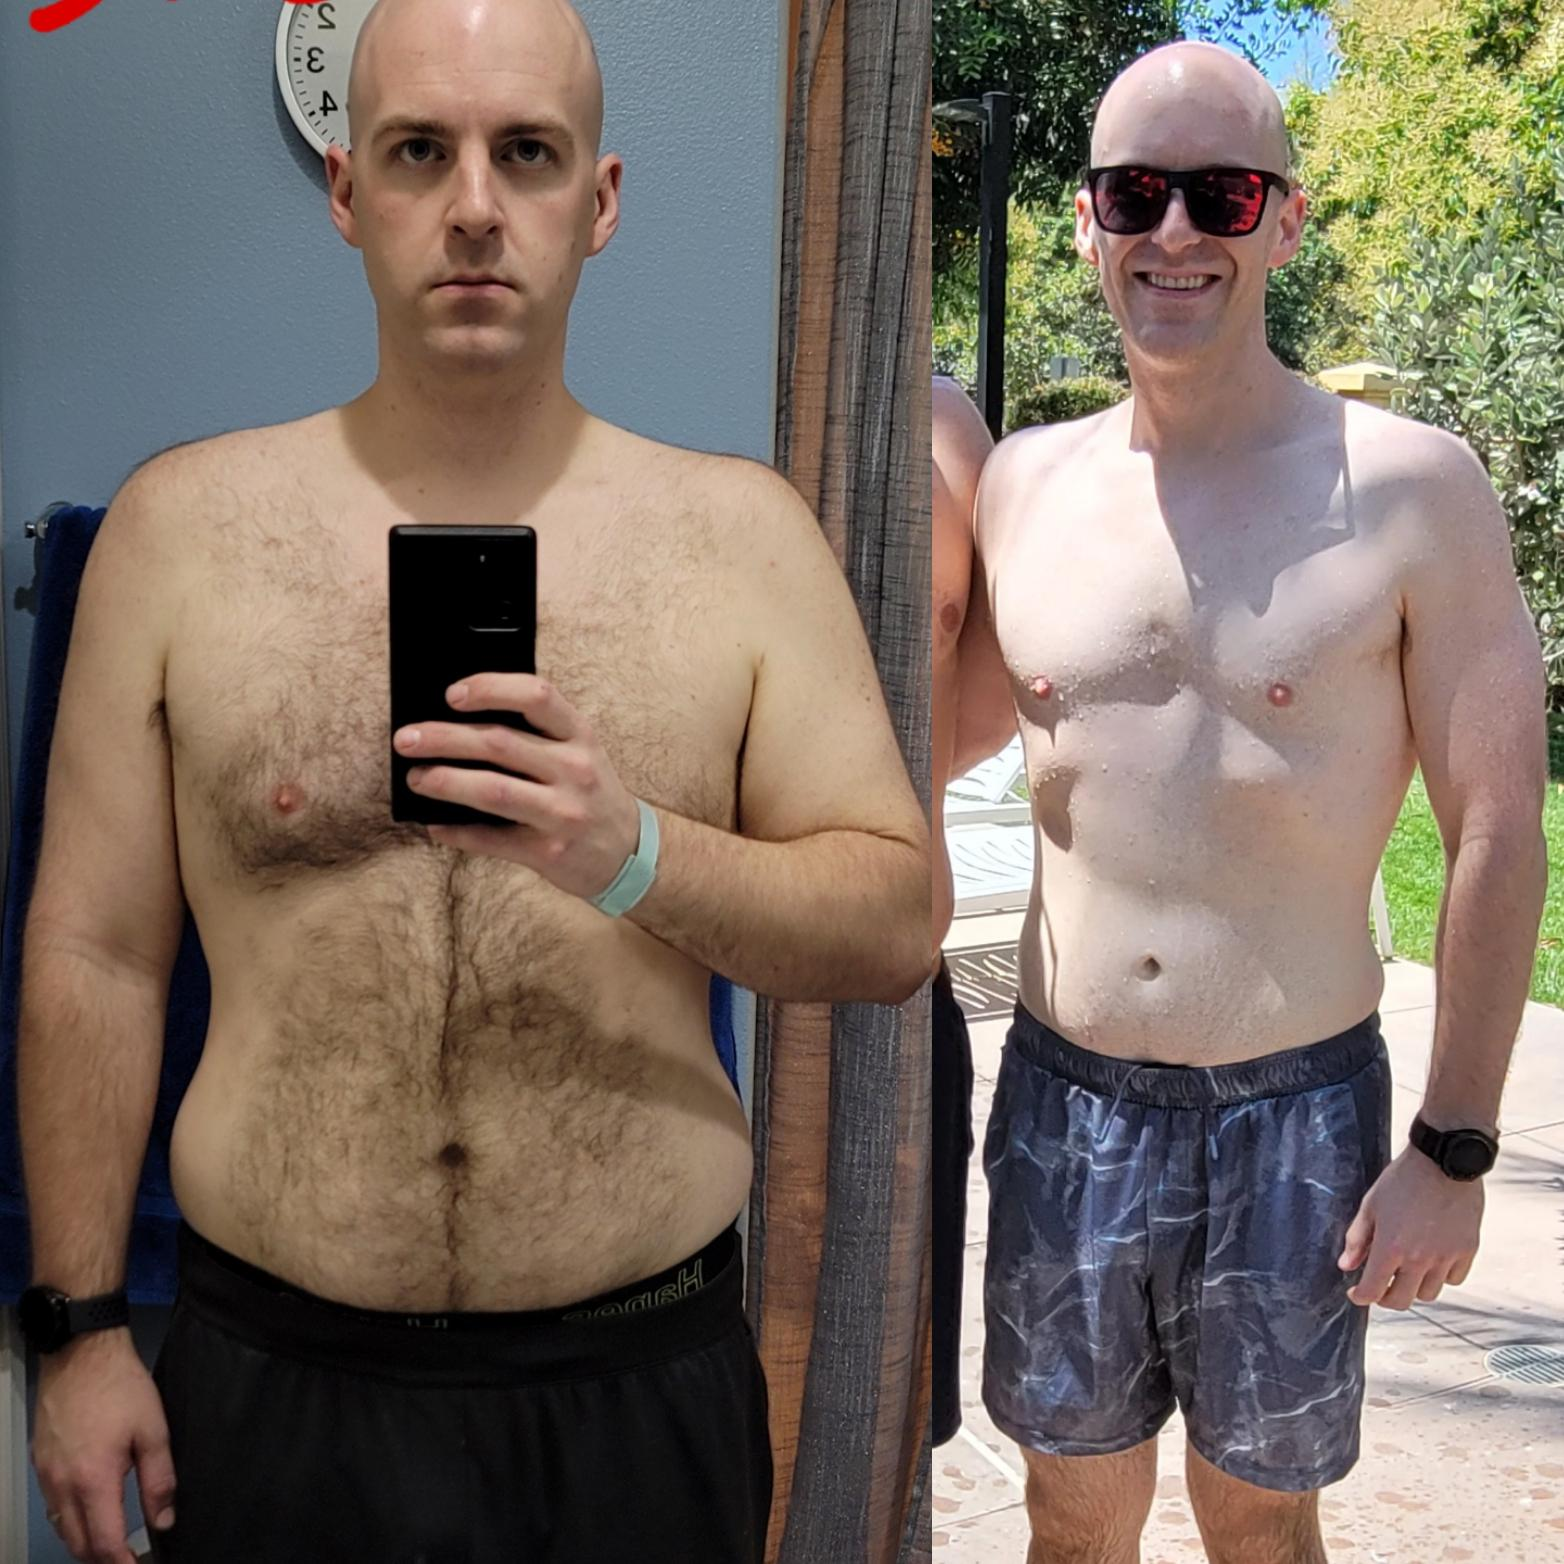 6 foot 6 Male 90 lbs Fat Loss Before and After 280 lbs to 190 lbs